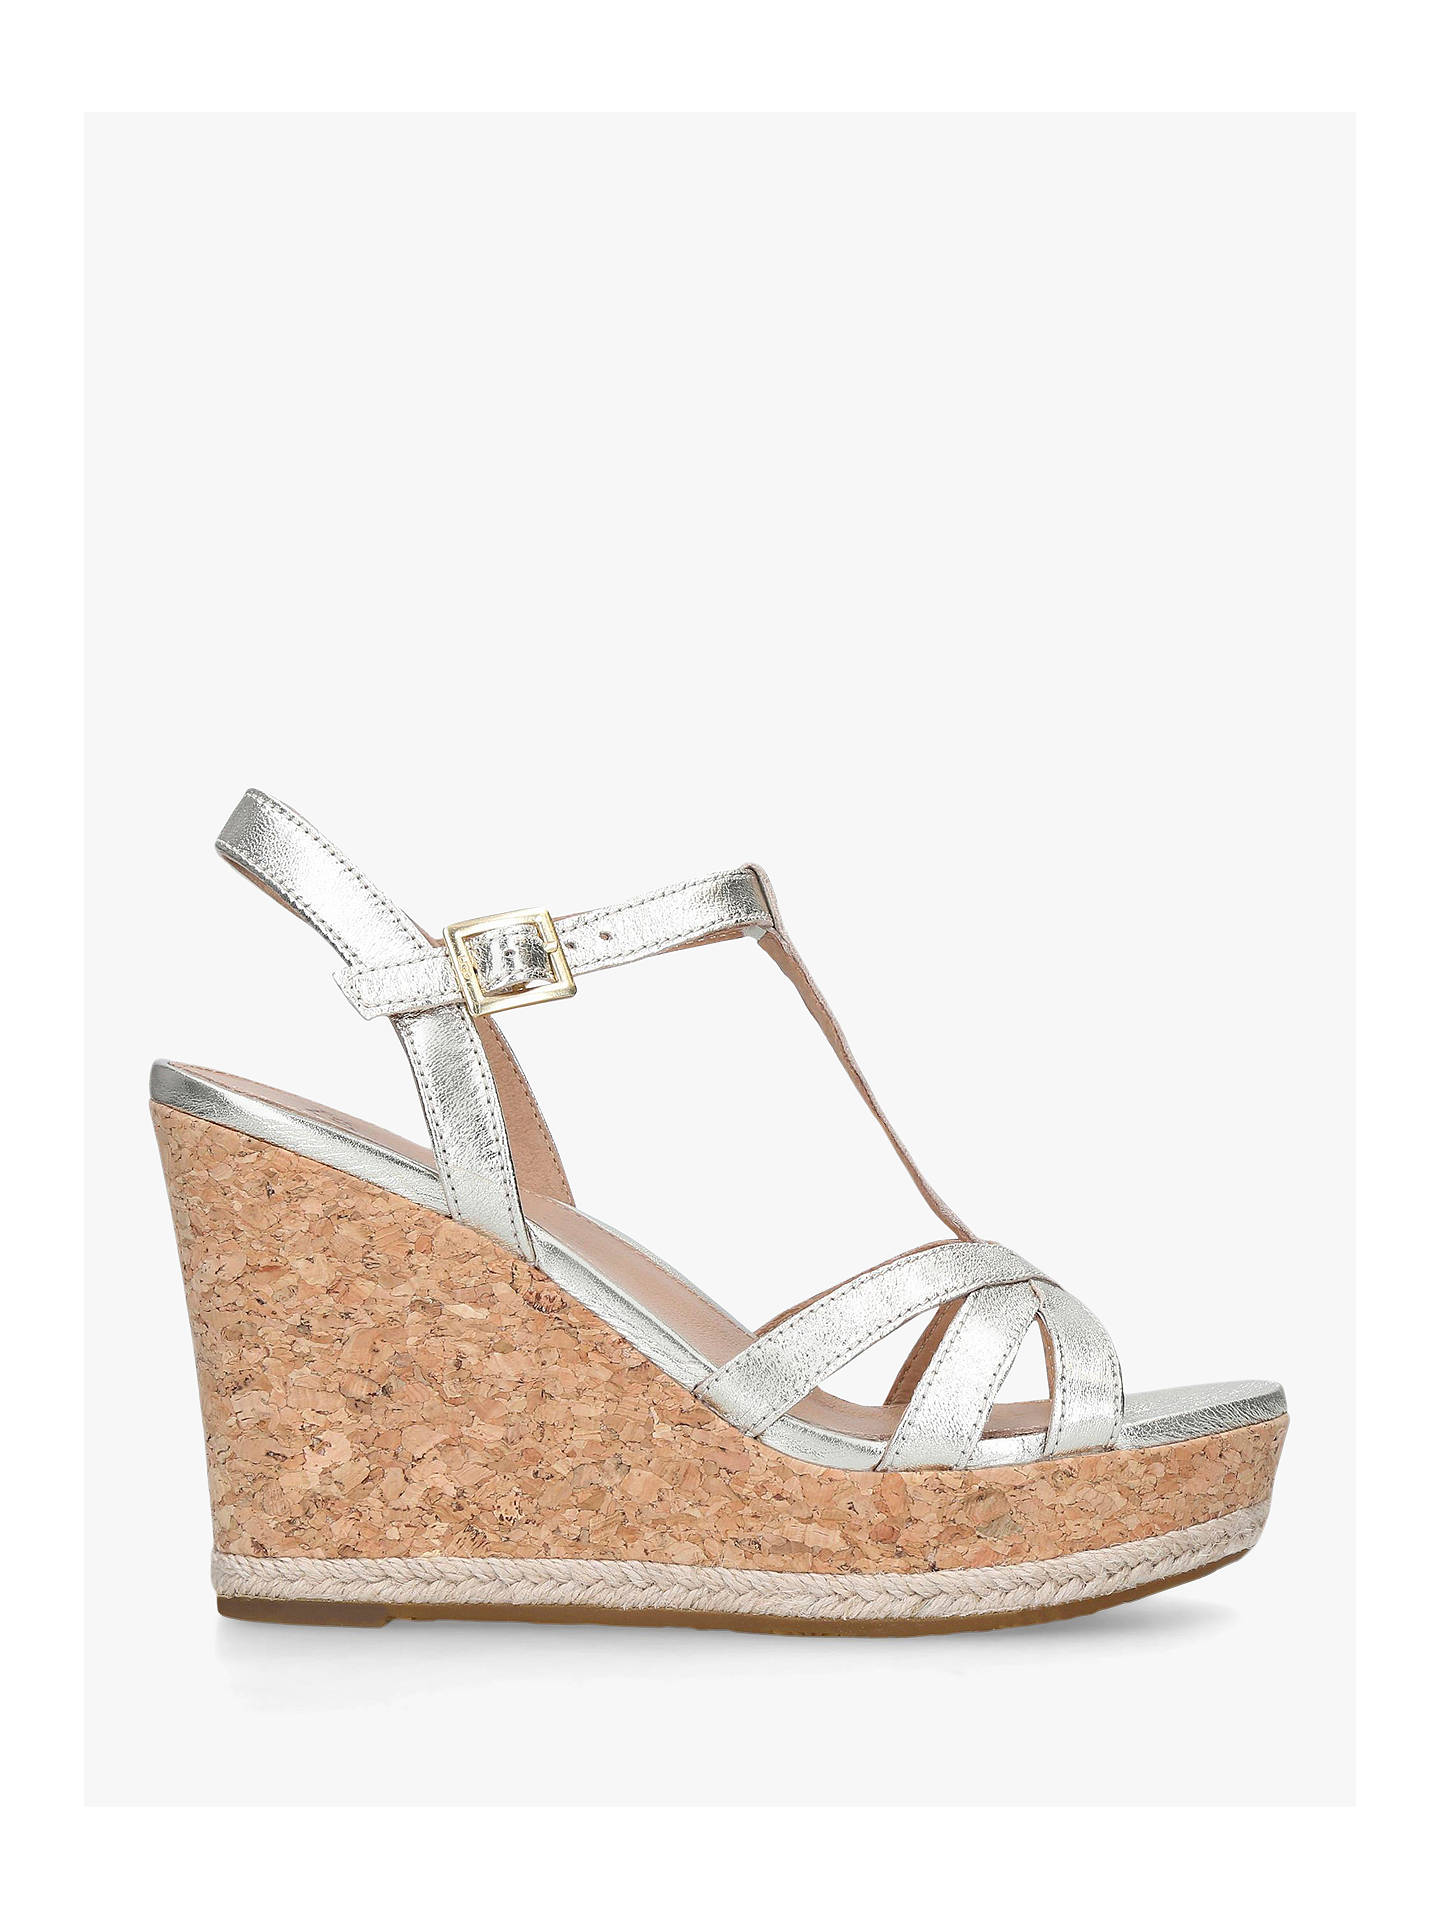 a6fbb7aadf7 UGG Melissa Metallic Leather Wedge Sandals, Gold at John Lewis ...